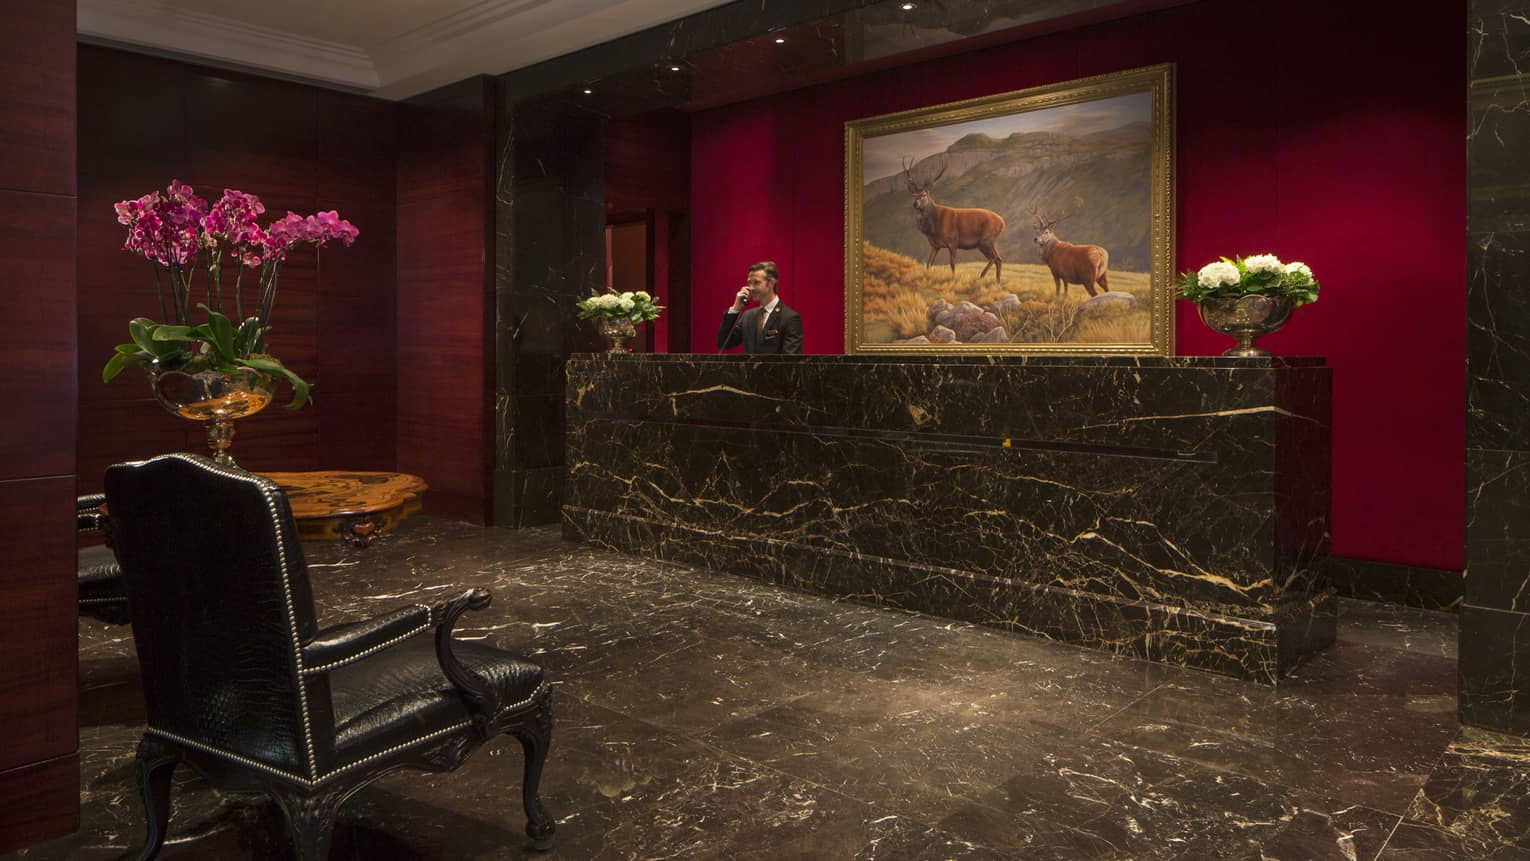 Black marble floor, reception desk, staff answers phone under large painting of elk